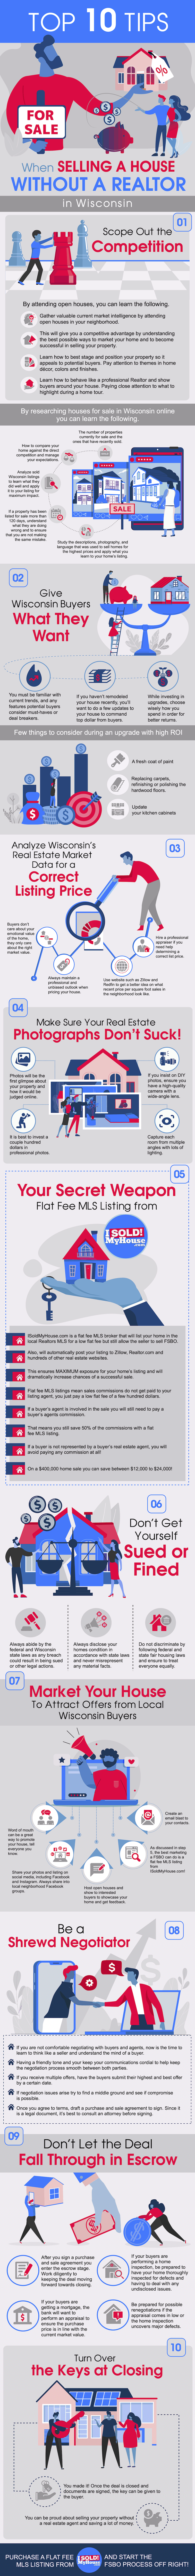 infographic of the 10 steps to sell a house in wisconsin without an agent